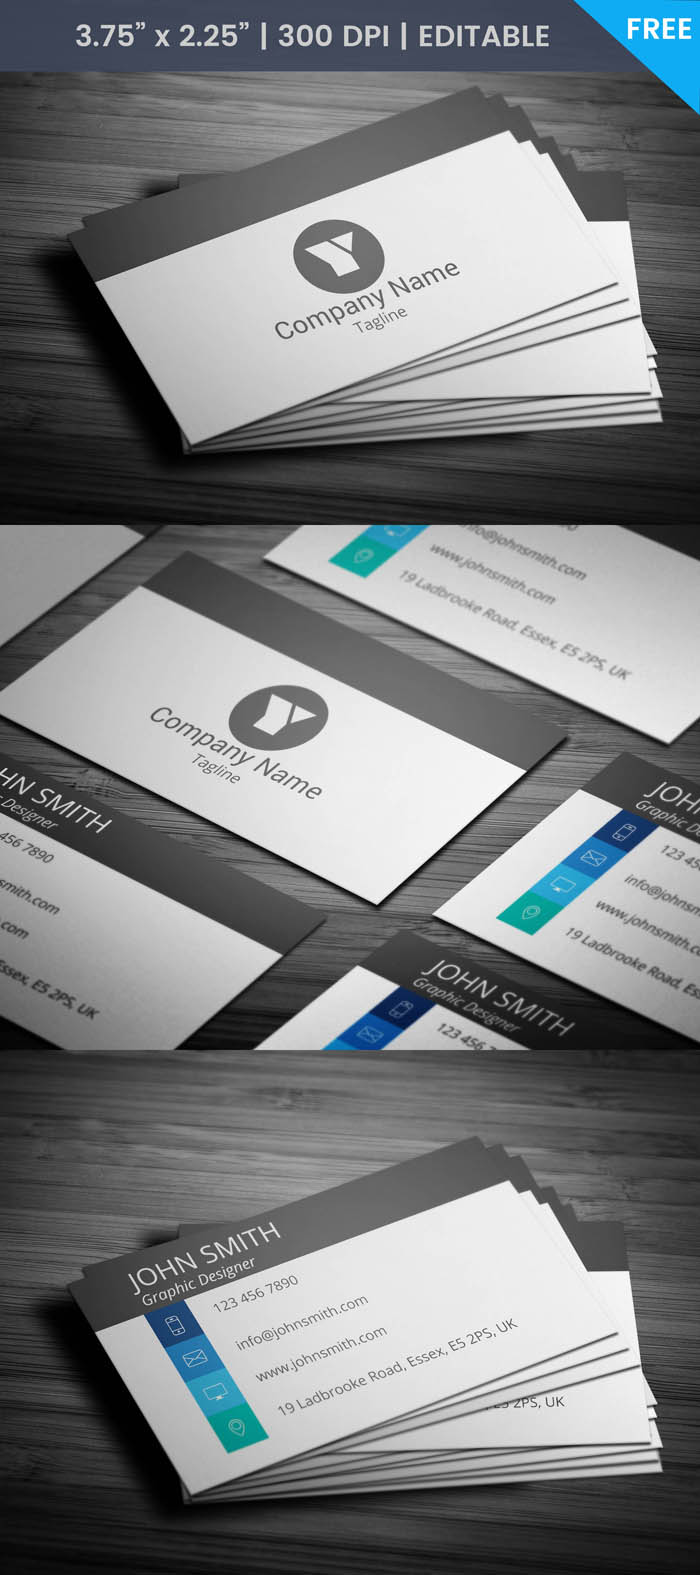 Free Cool Coo Business Card Template